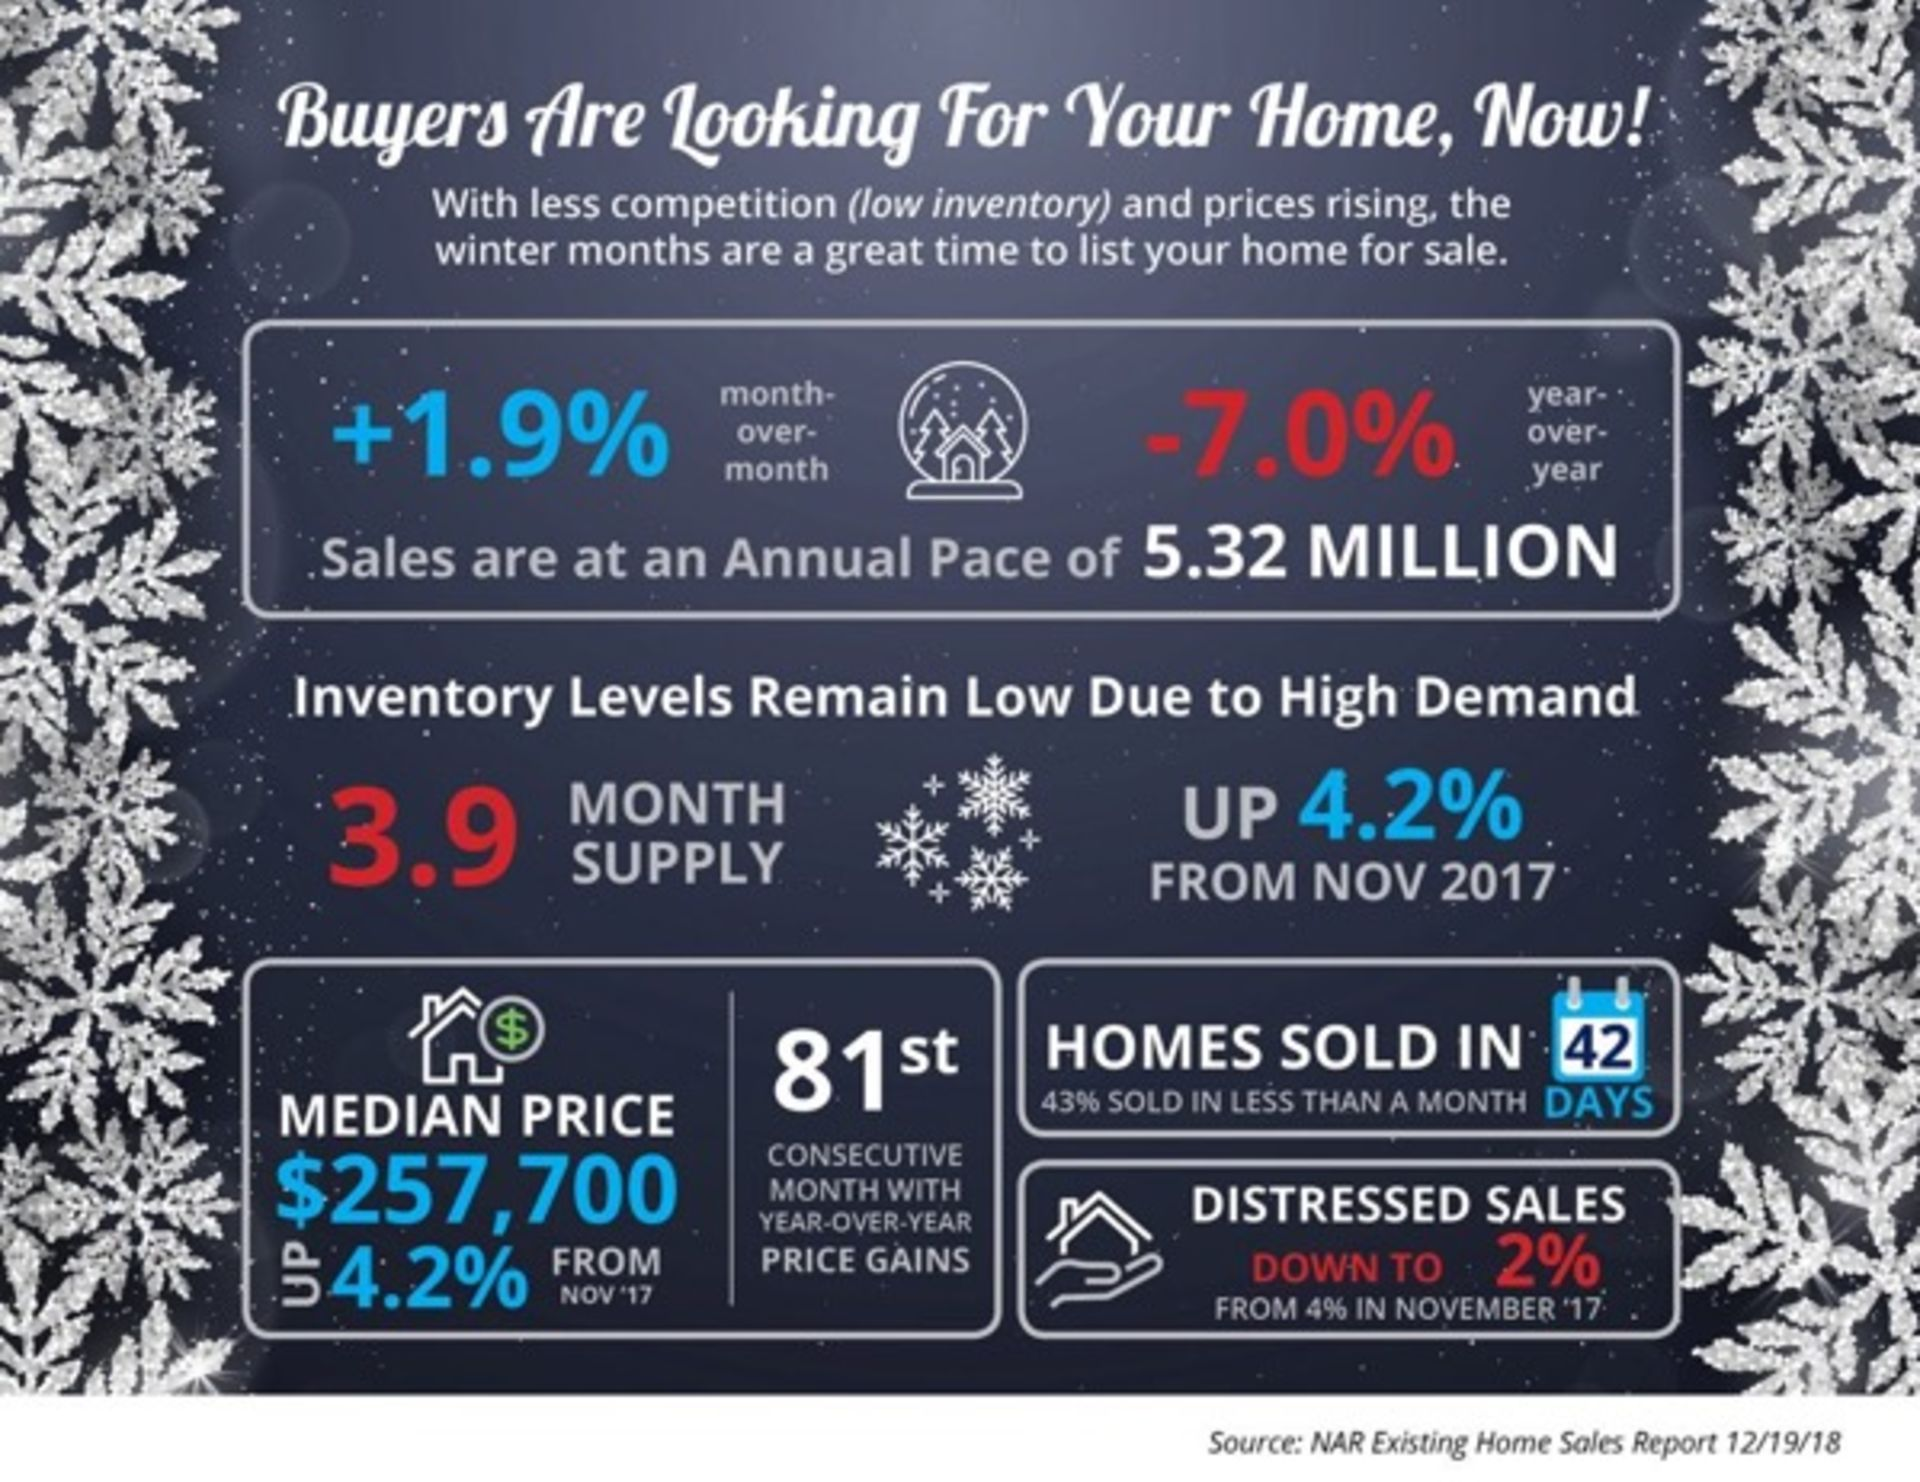 Buyers Are Looking for Your Home, Now